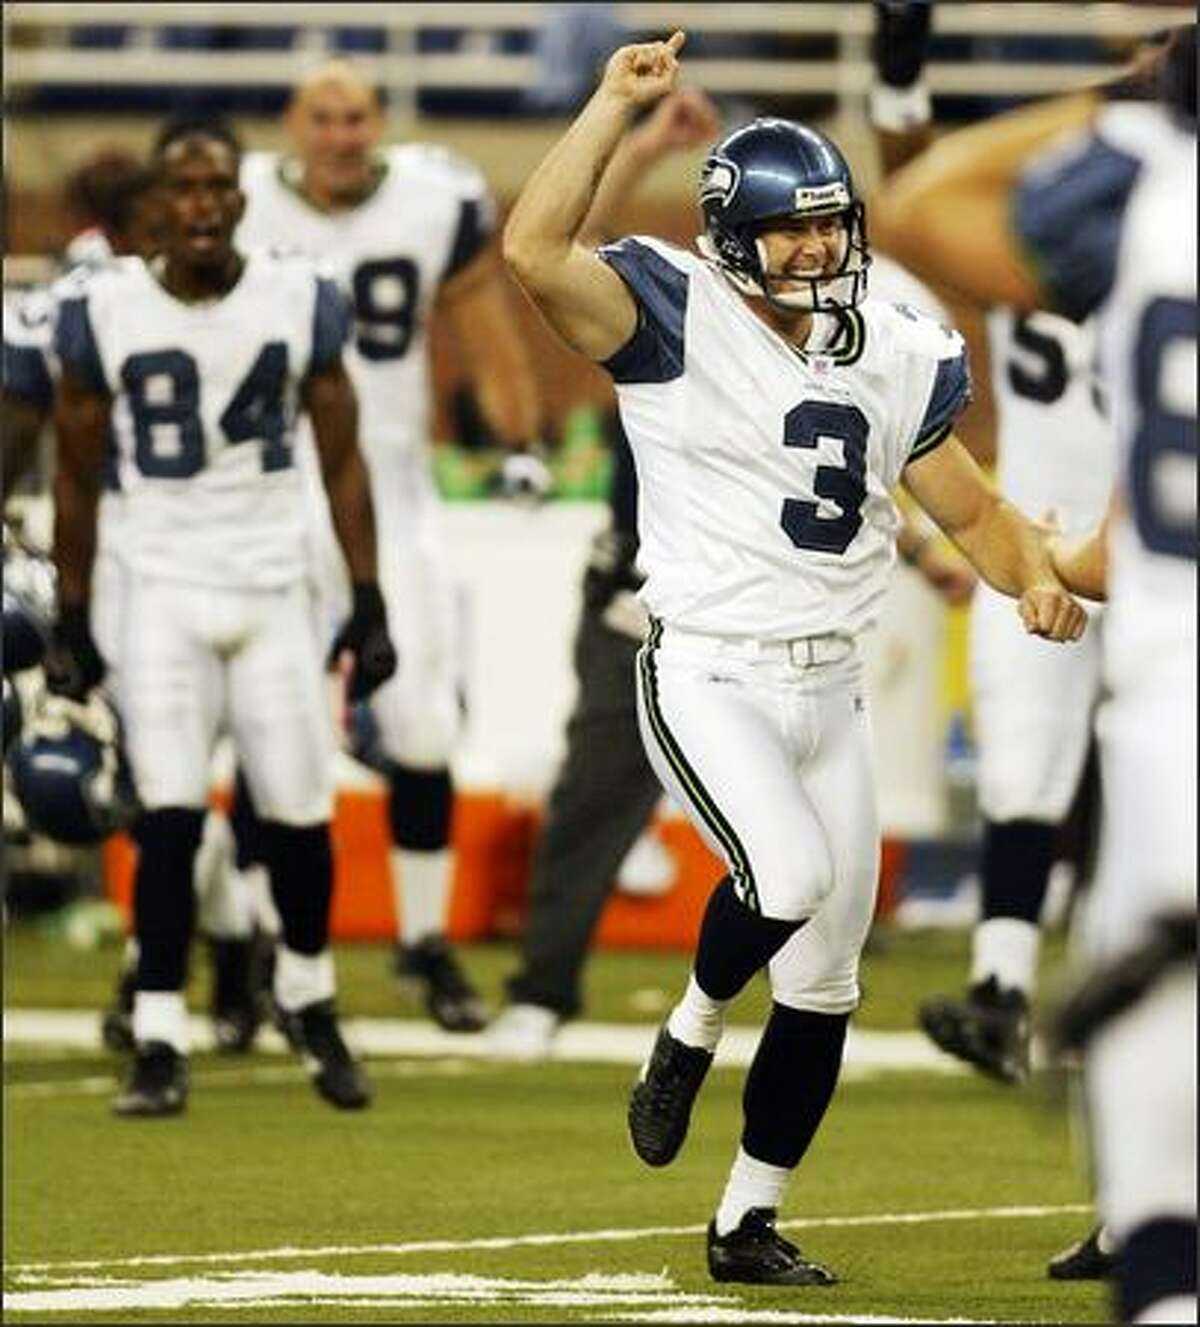 Seahawks Josh Brown celebrates his game-winning field goal over the Detroit Lions during fourth quarter action at Ford Field in Detroit.